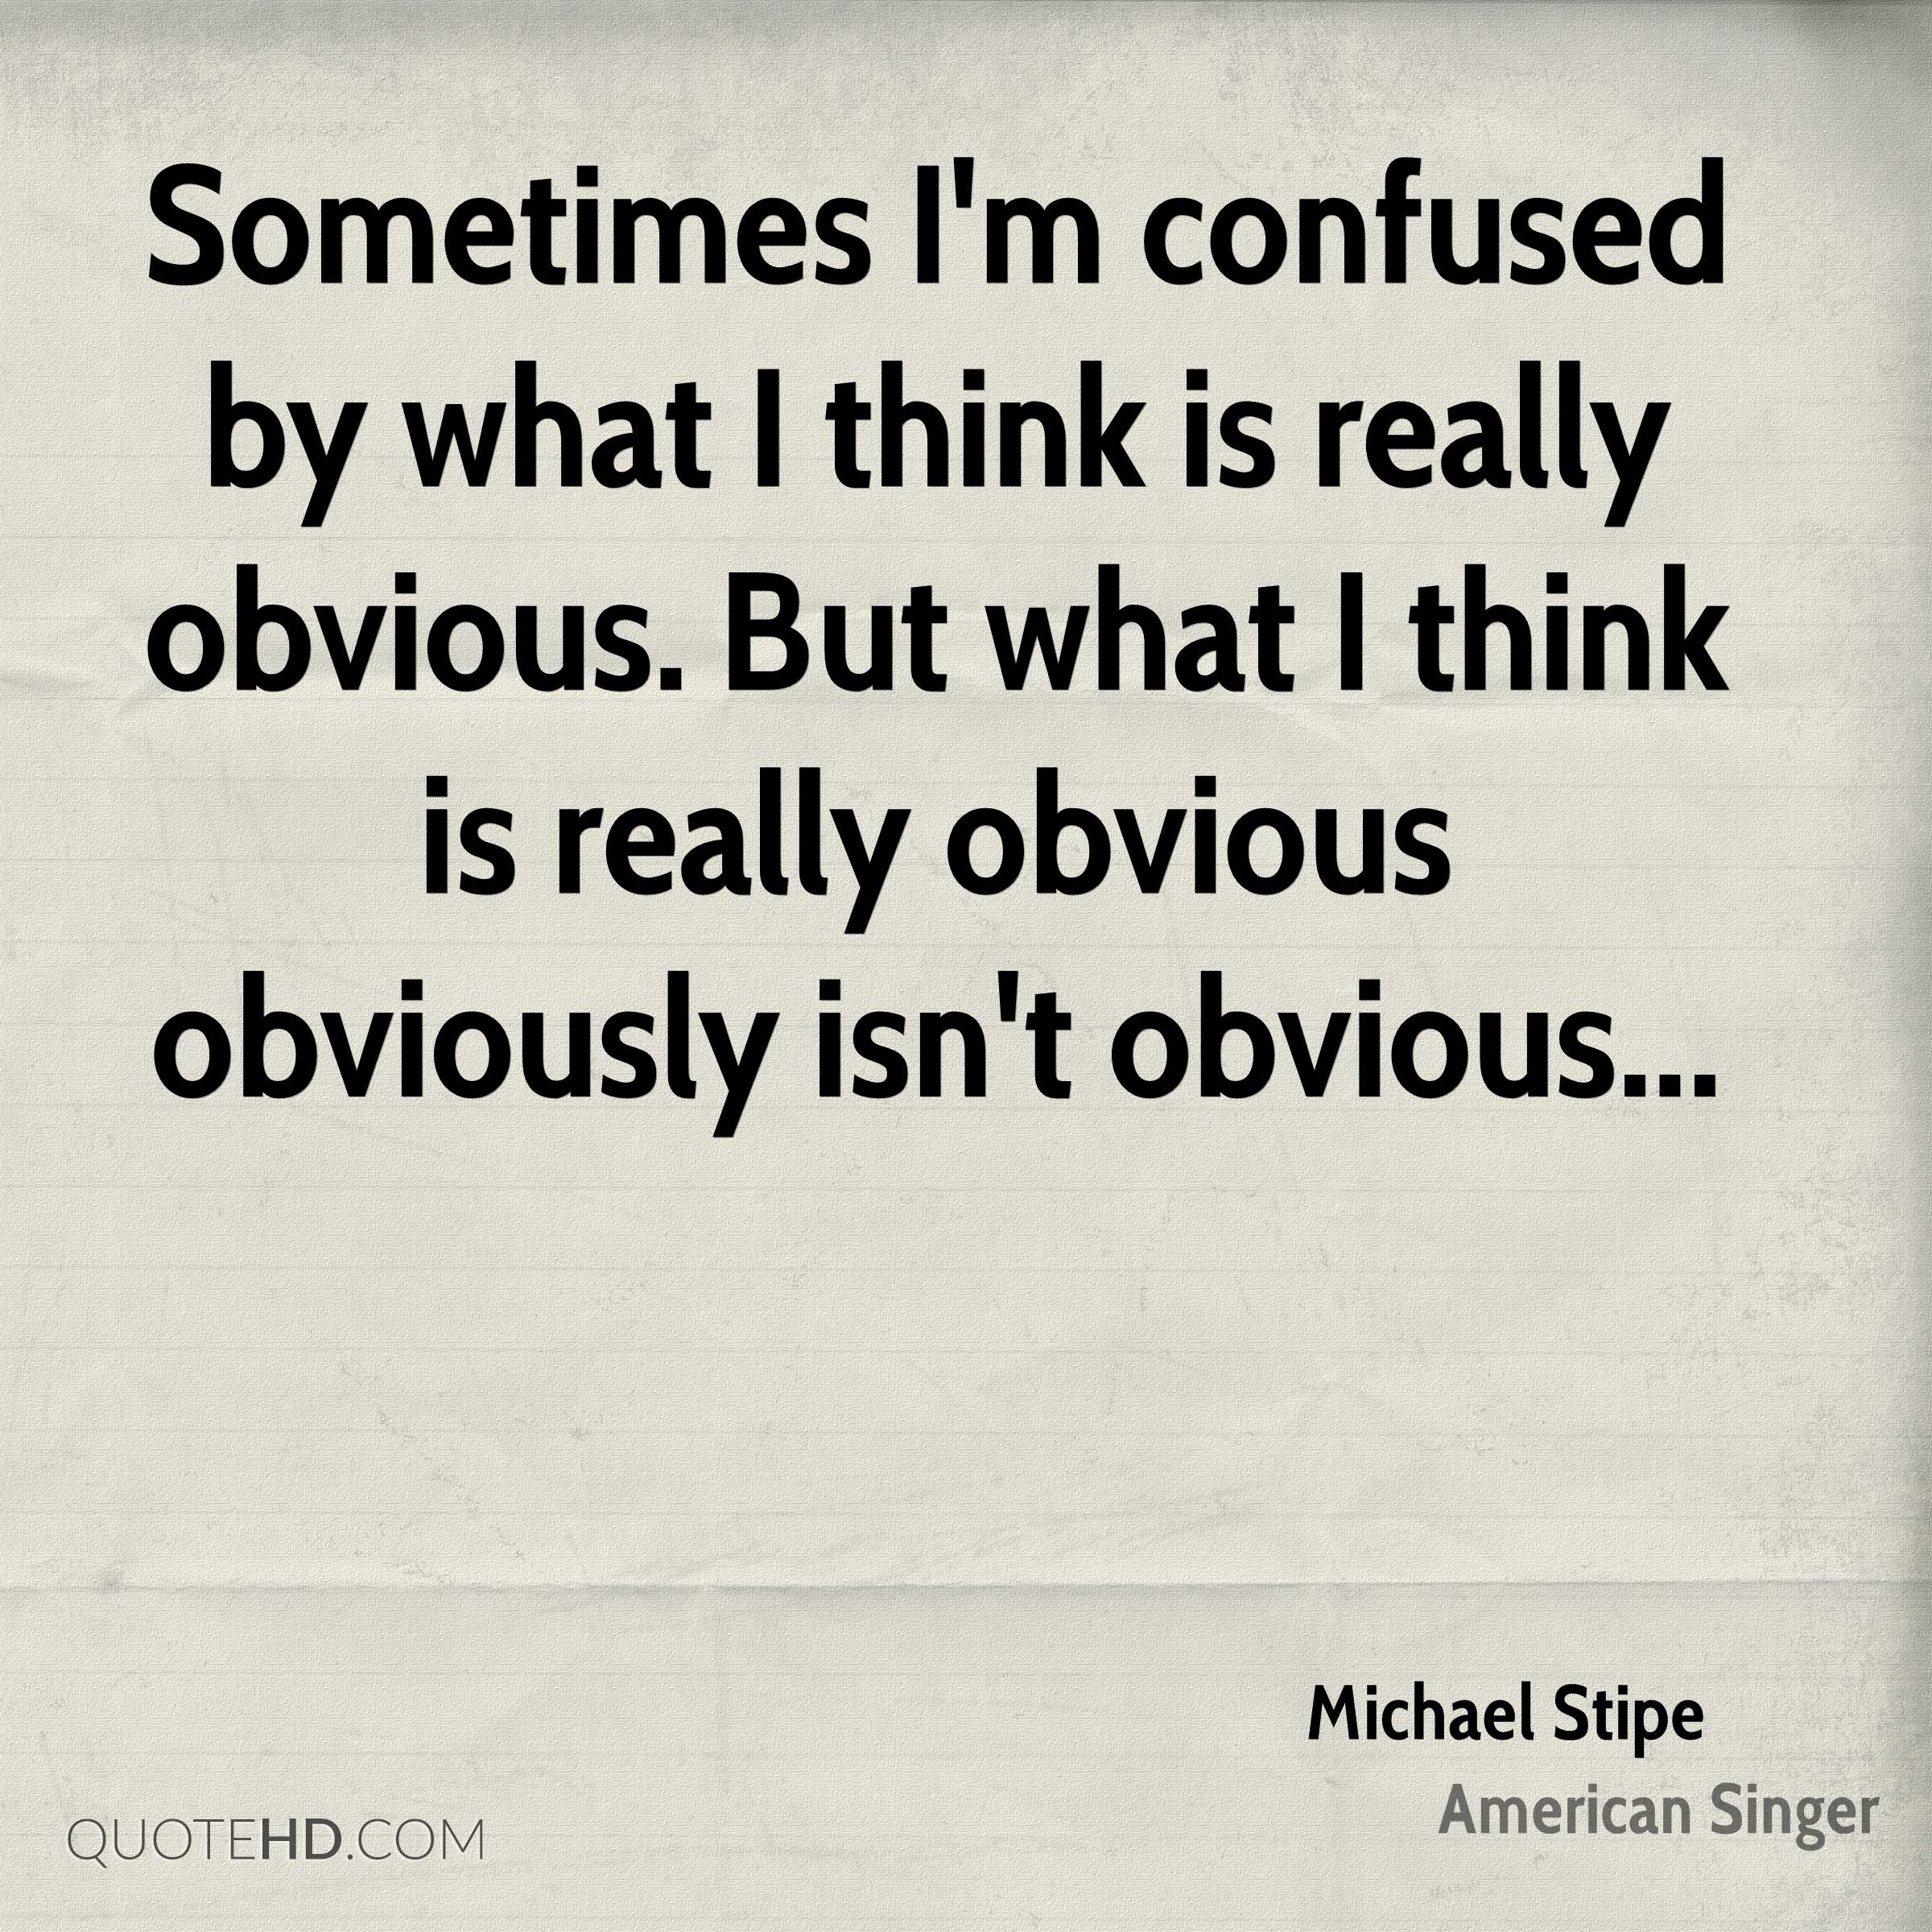 Sometimes I'm confused by what I think is really obvious. But what I think is really obvious obviously isn't obvious...